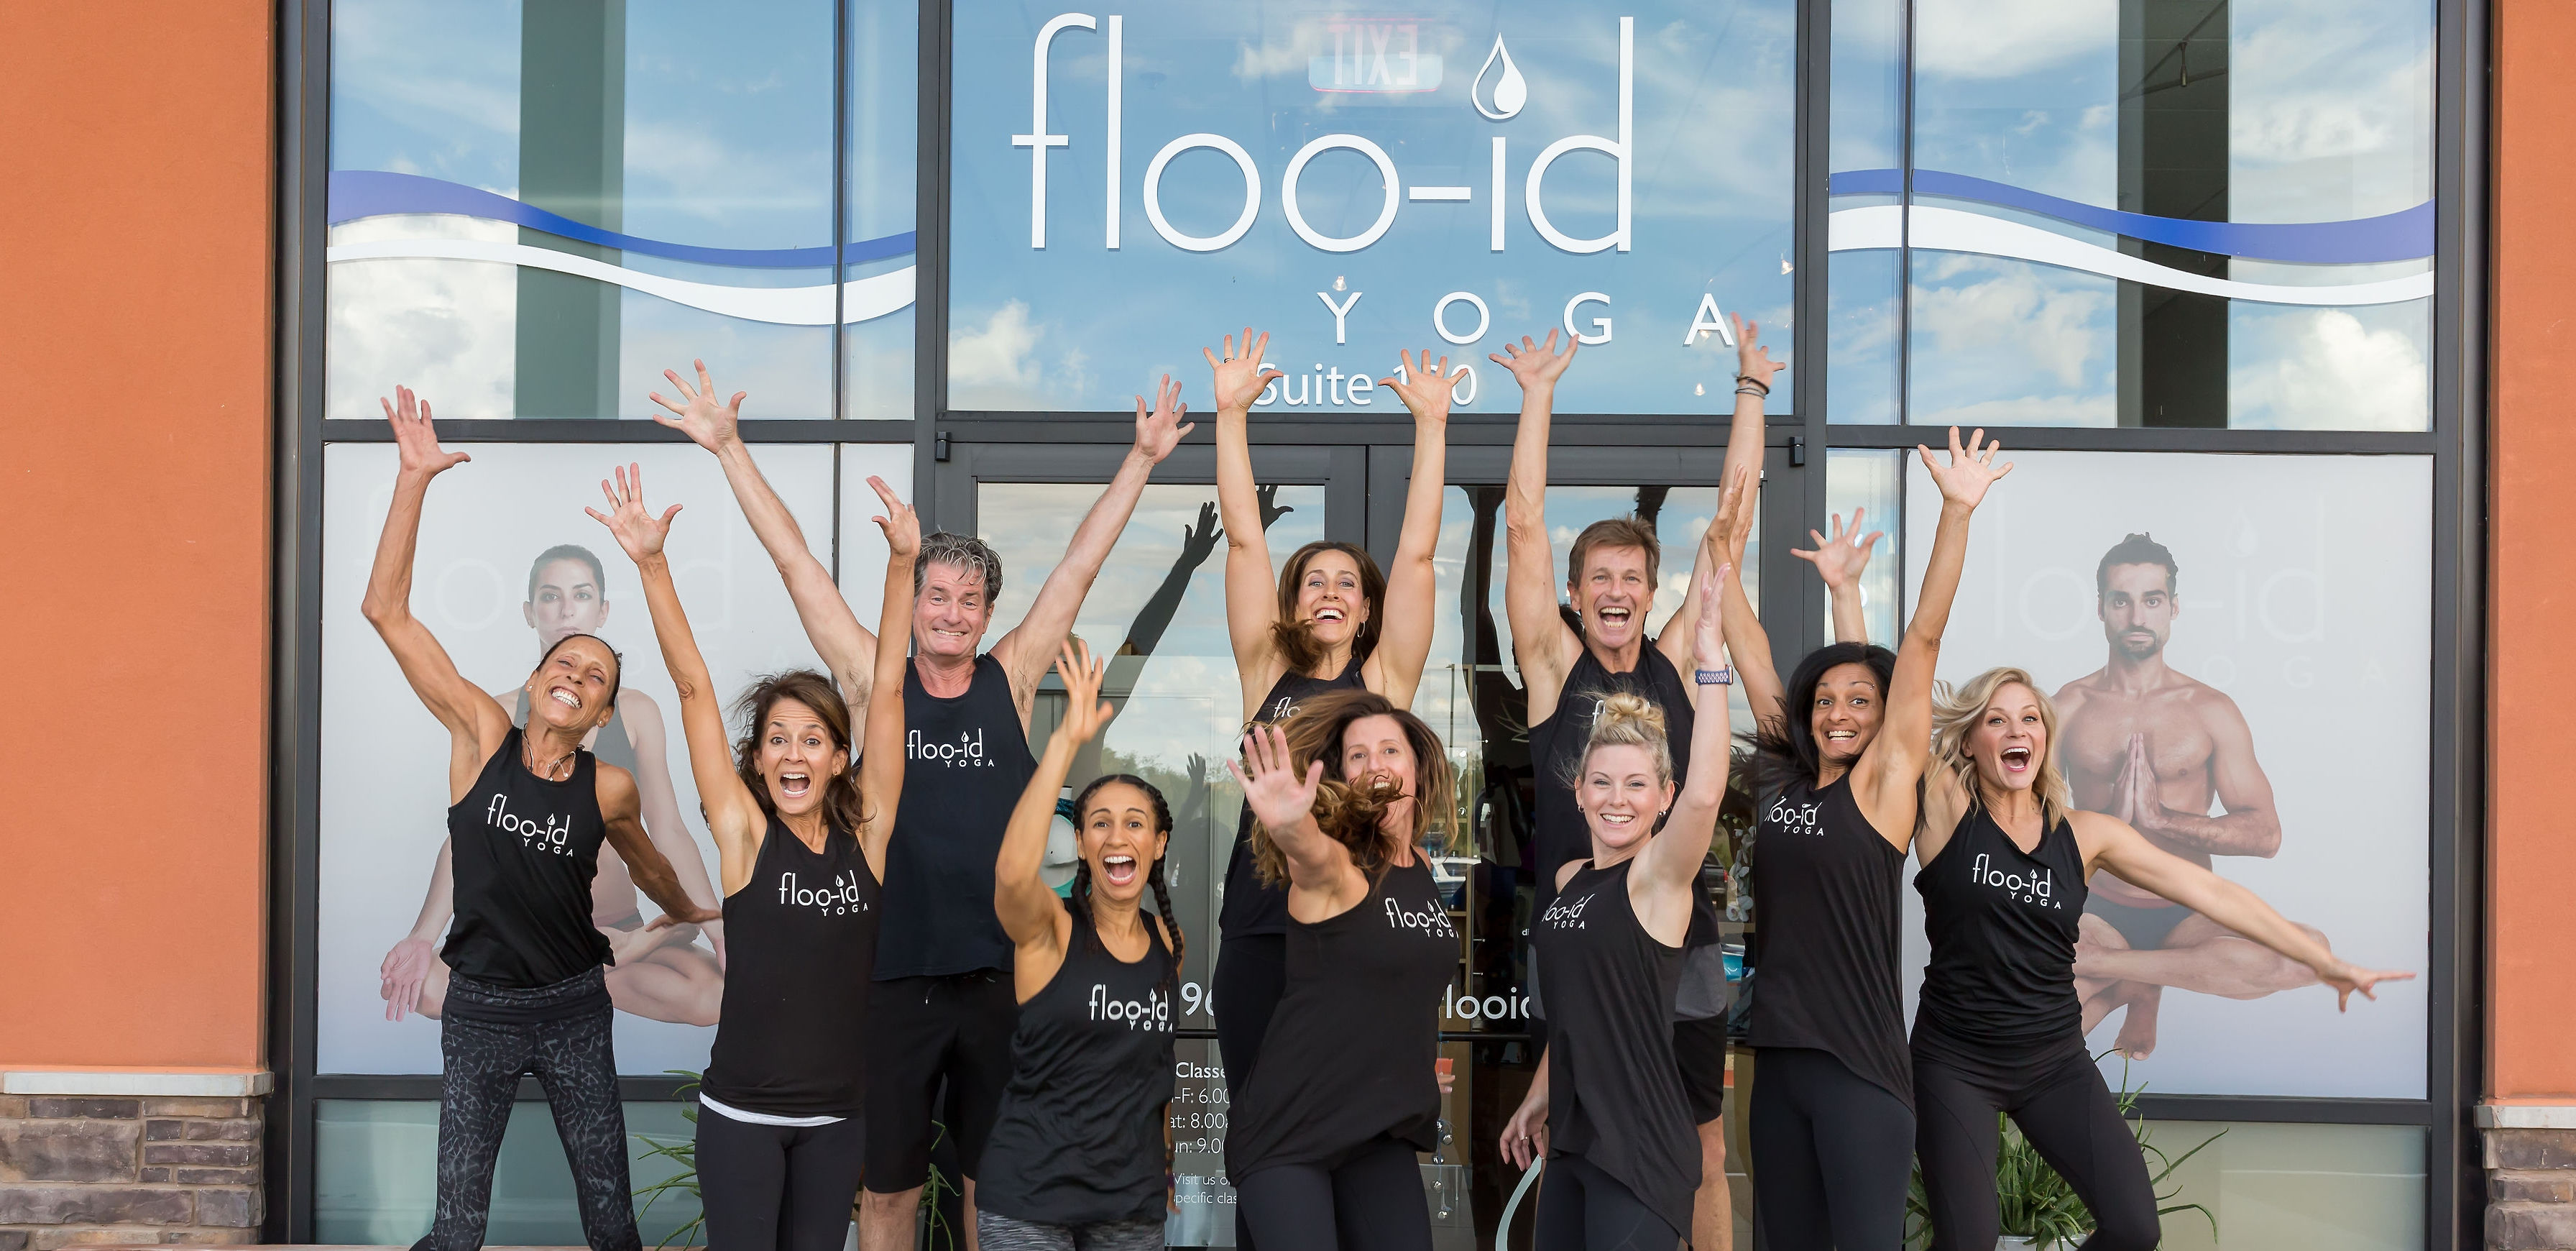 Happy floo-id YOGA instructors jumping to welcome you!